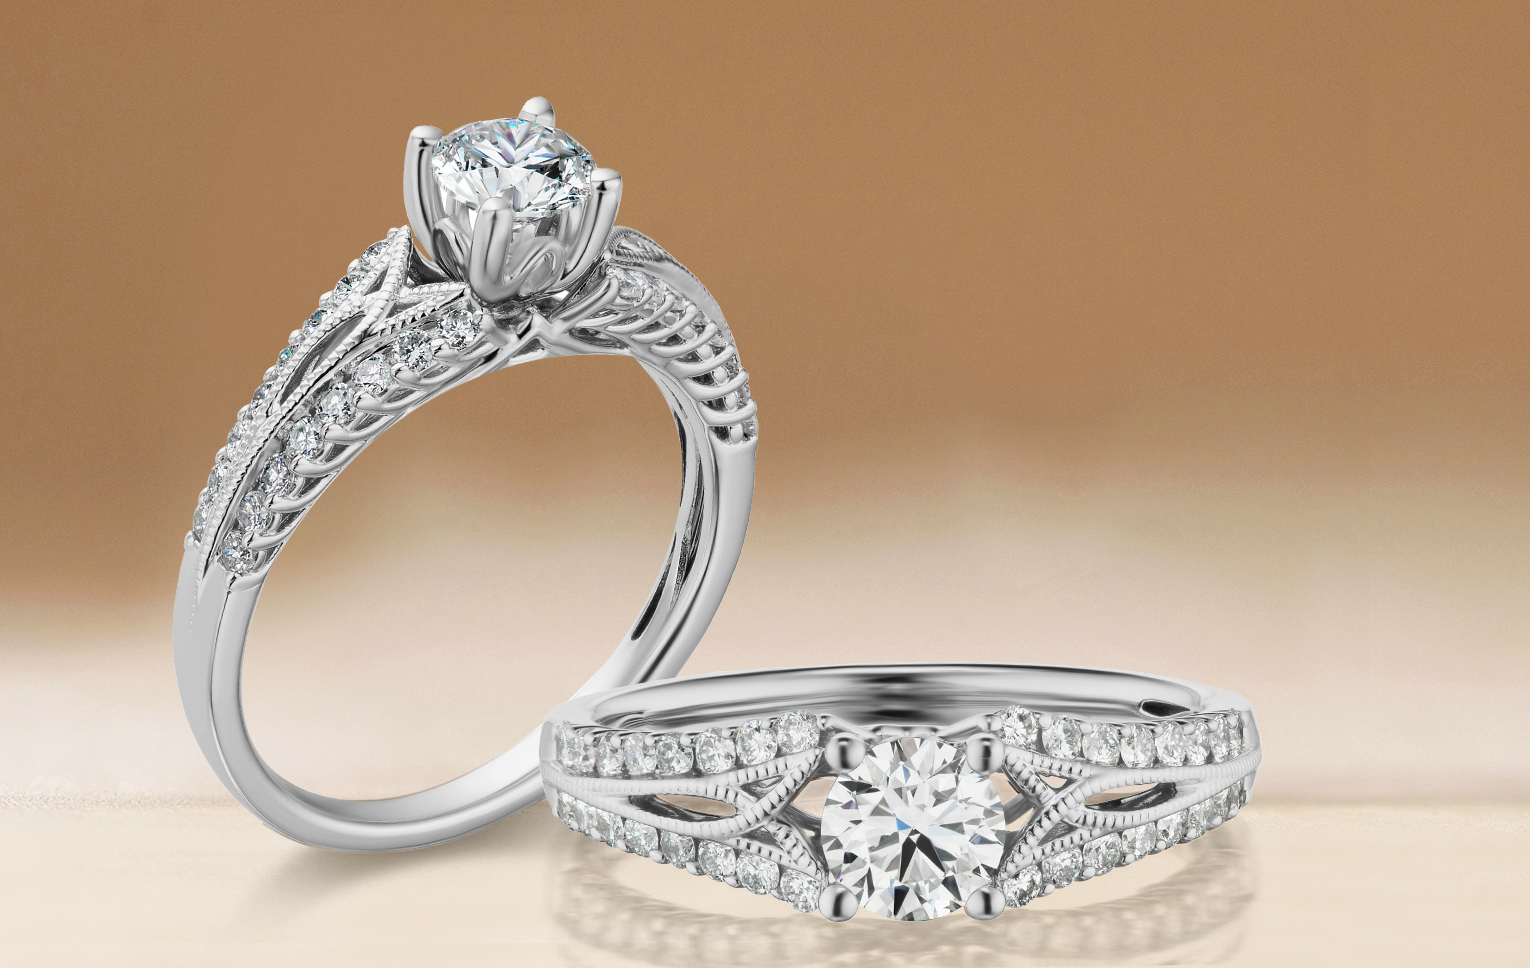 Divina preset engagement ring in white gold